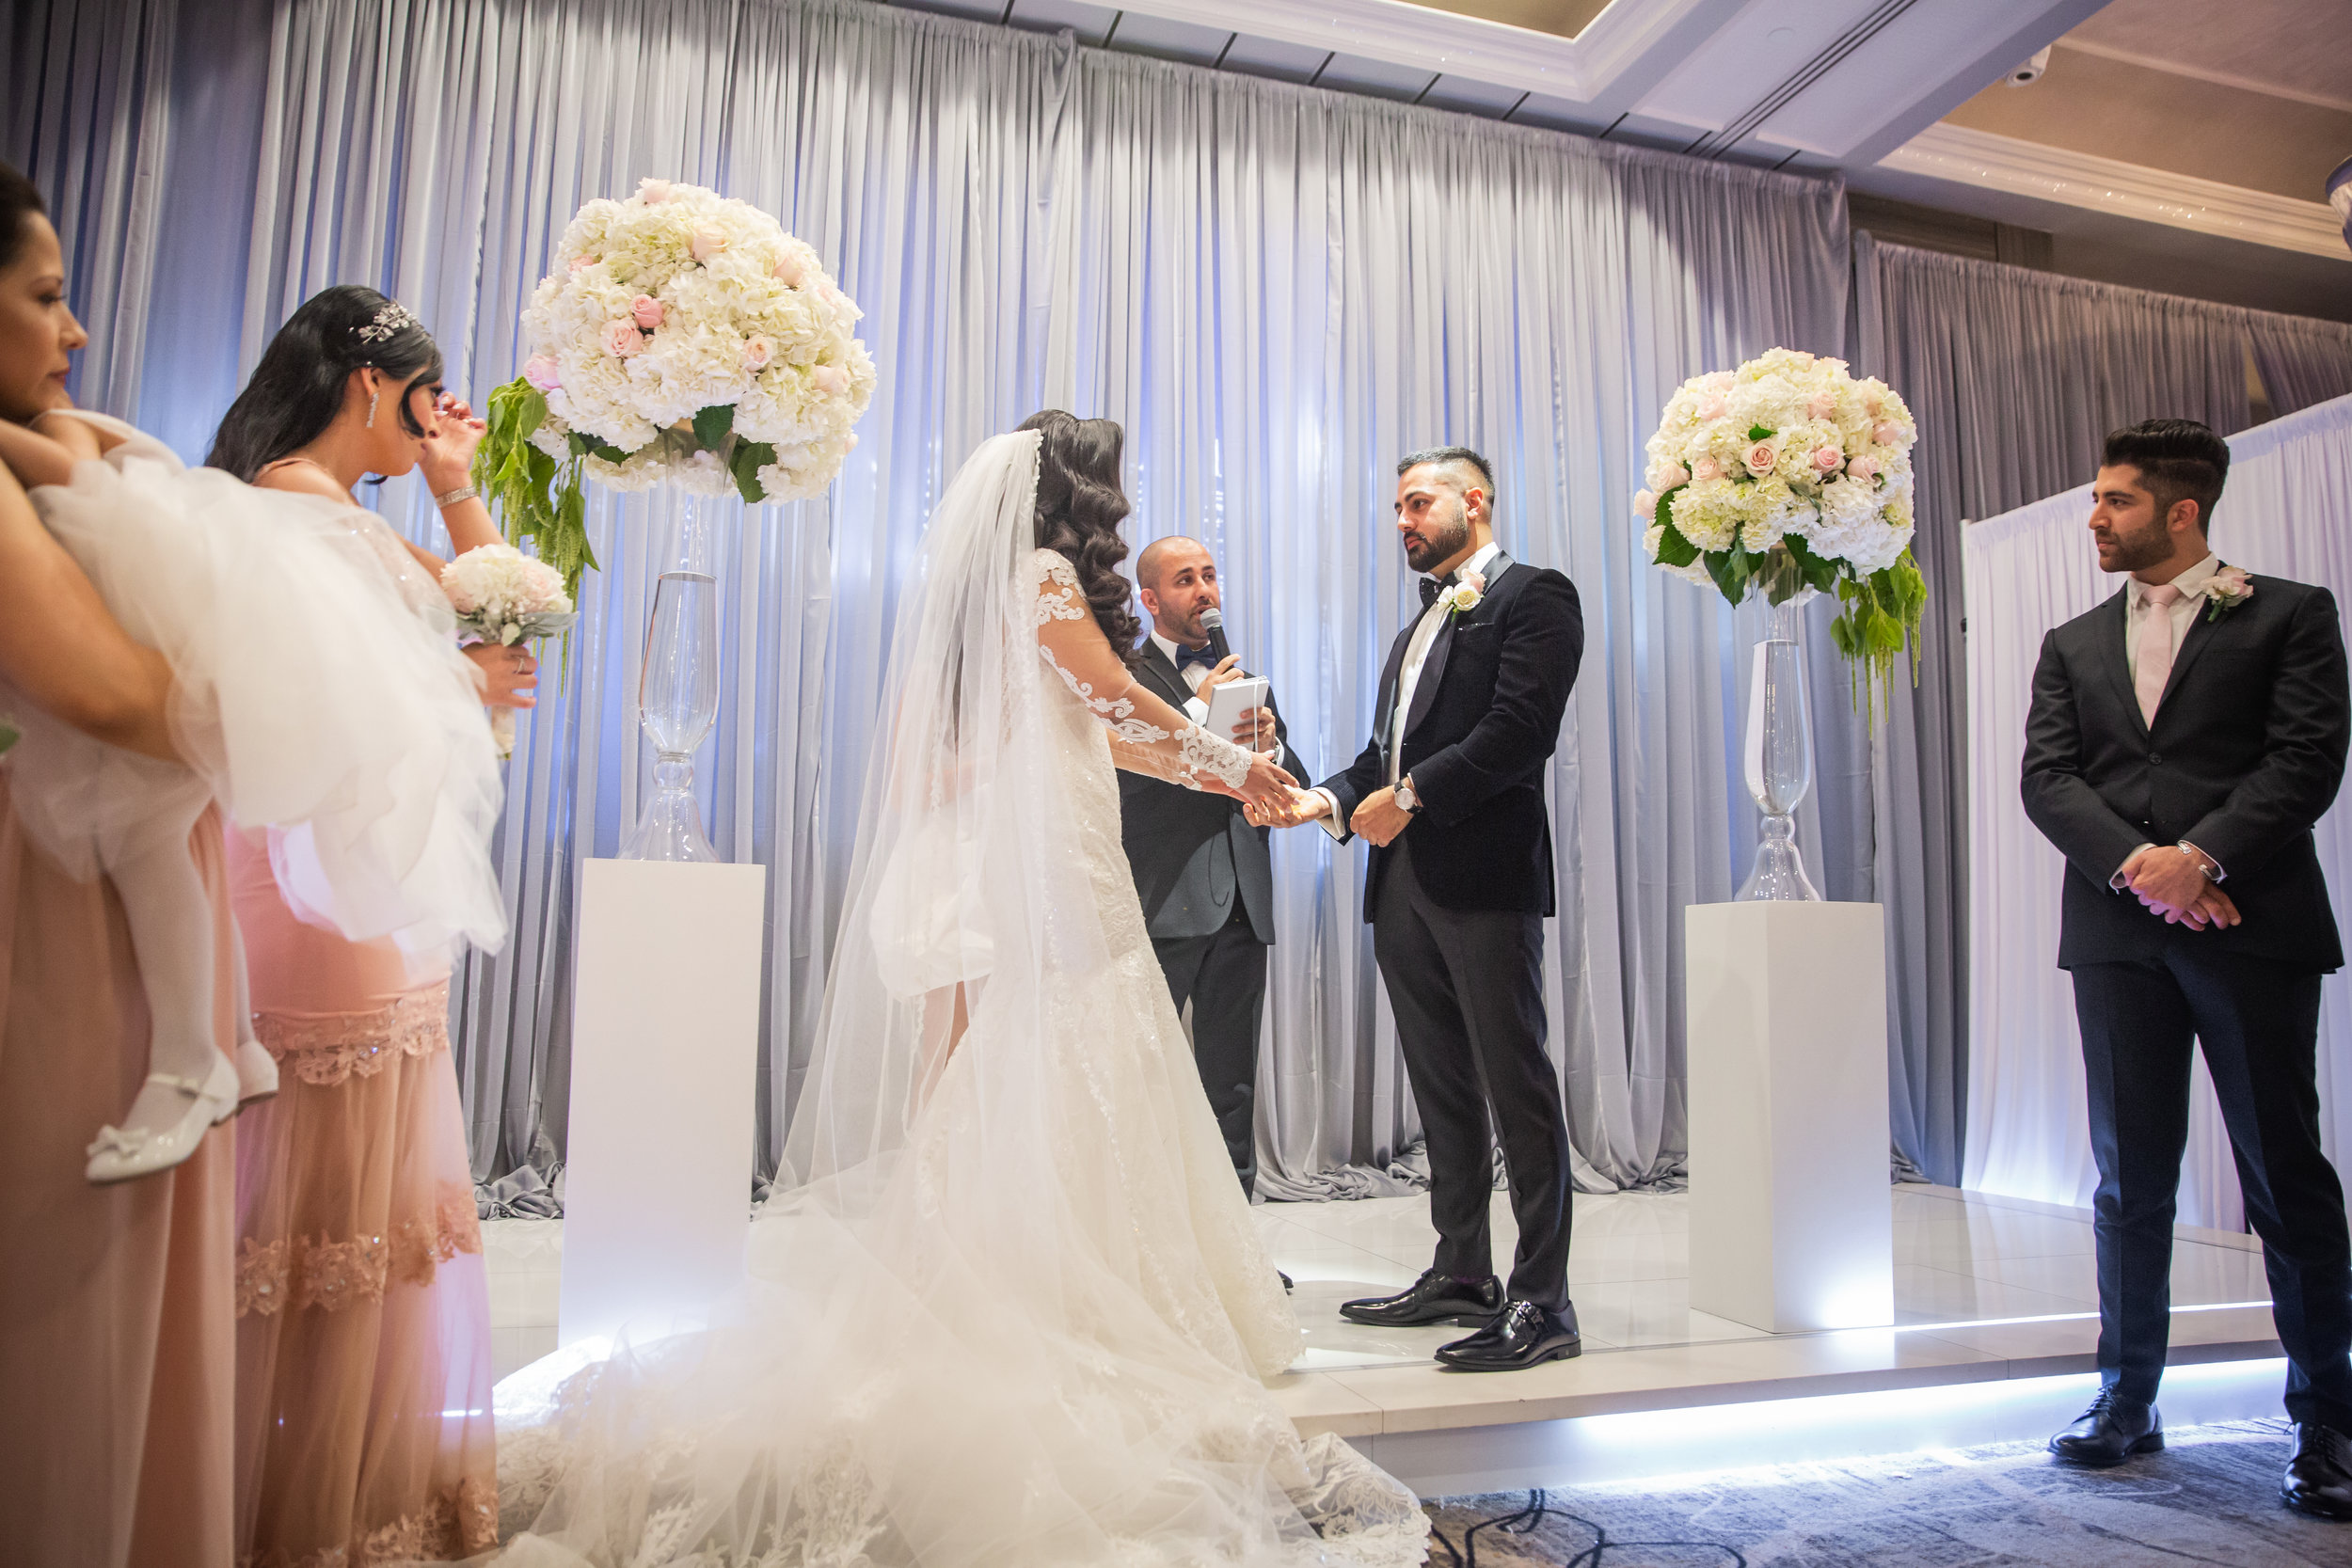 Romantic Wedding Theme Feature - Glendale, CA - Legacy Ballroom - The bride and groom exchanging vows during their wedding ceremony.